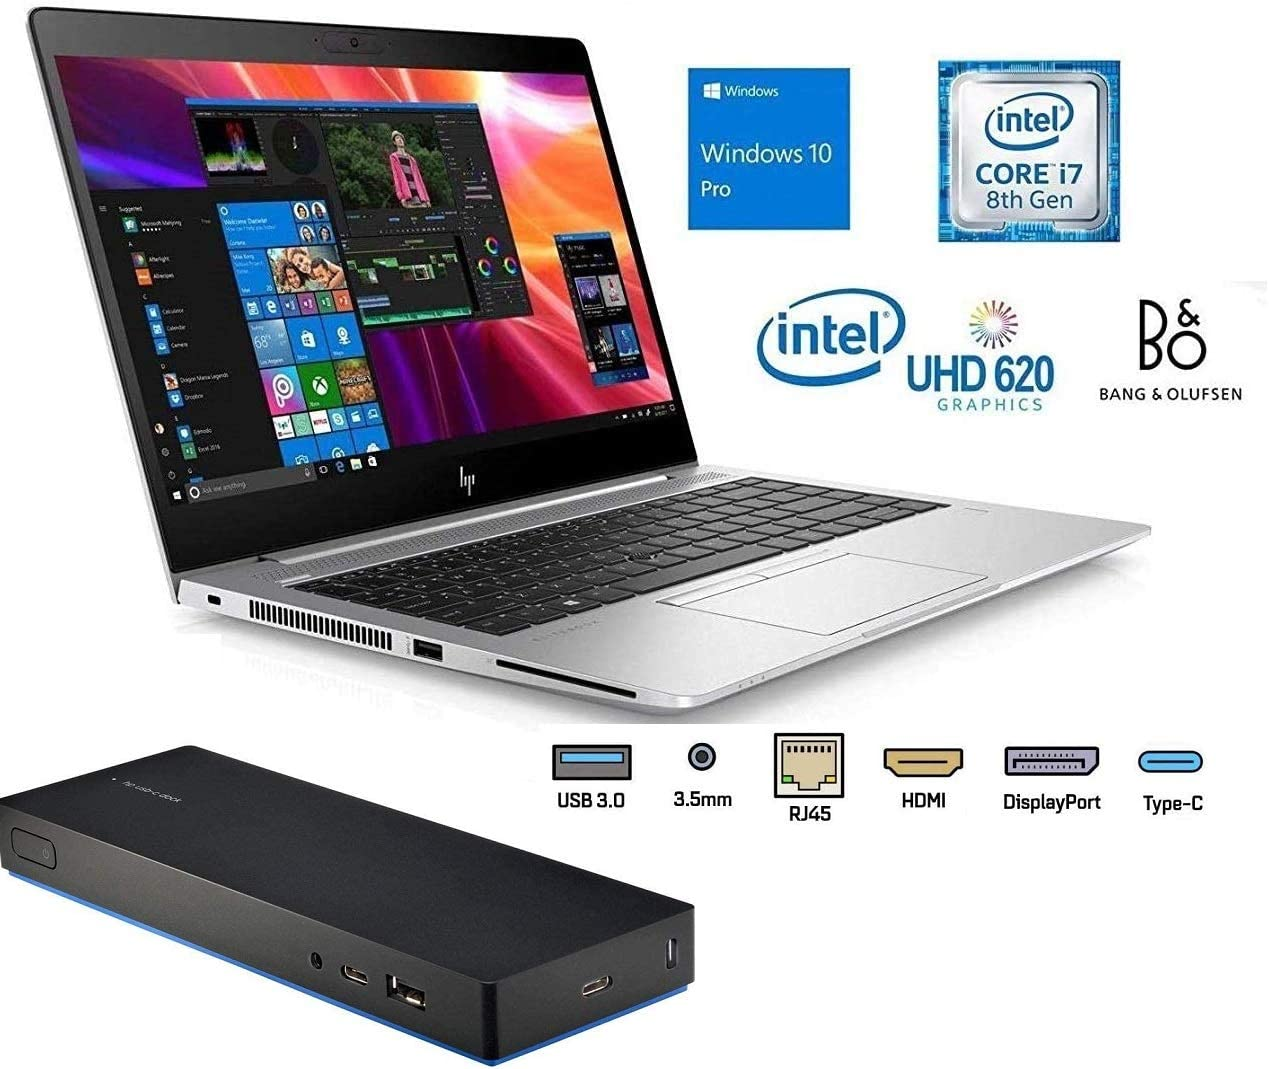 "HP Elitebook 840 G5 with Docking Station 14"" Full HD FHD (1920x1080) Business Laptop (Intel Quad-Core i5-8250U, 16GB DDR4 RAM, 256GB PCIe SSD), Backlit, Fingerprint, Thunderbolt, Windows 10 Pro 64-bit"